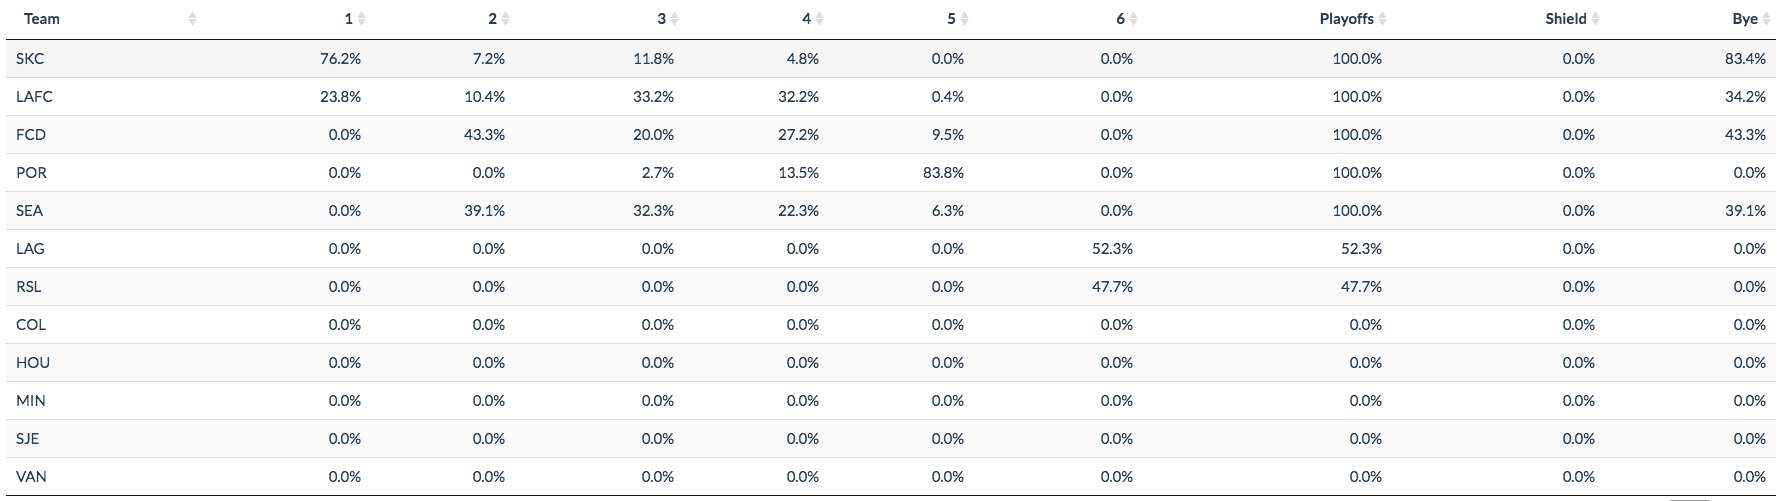 probabilities provided by www.americansocceranalysis.com